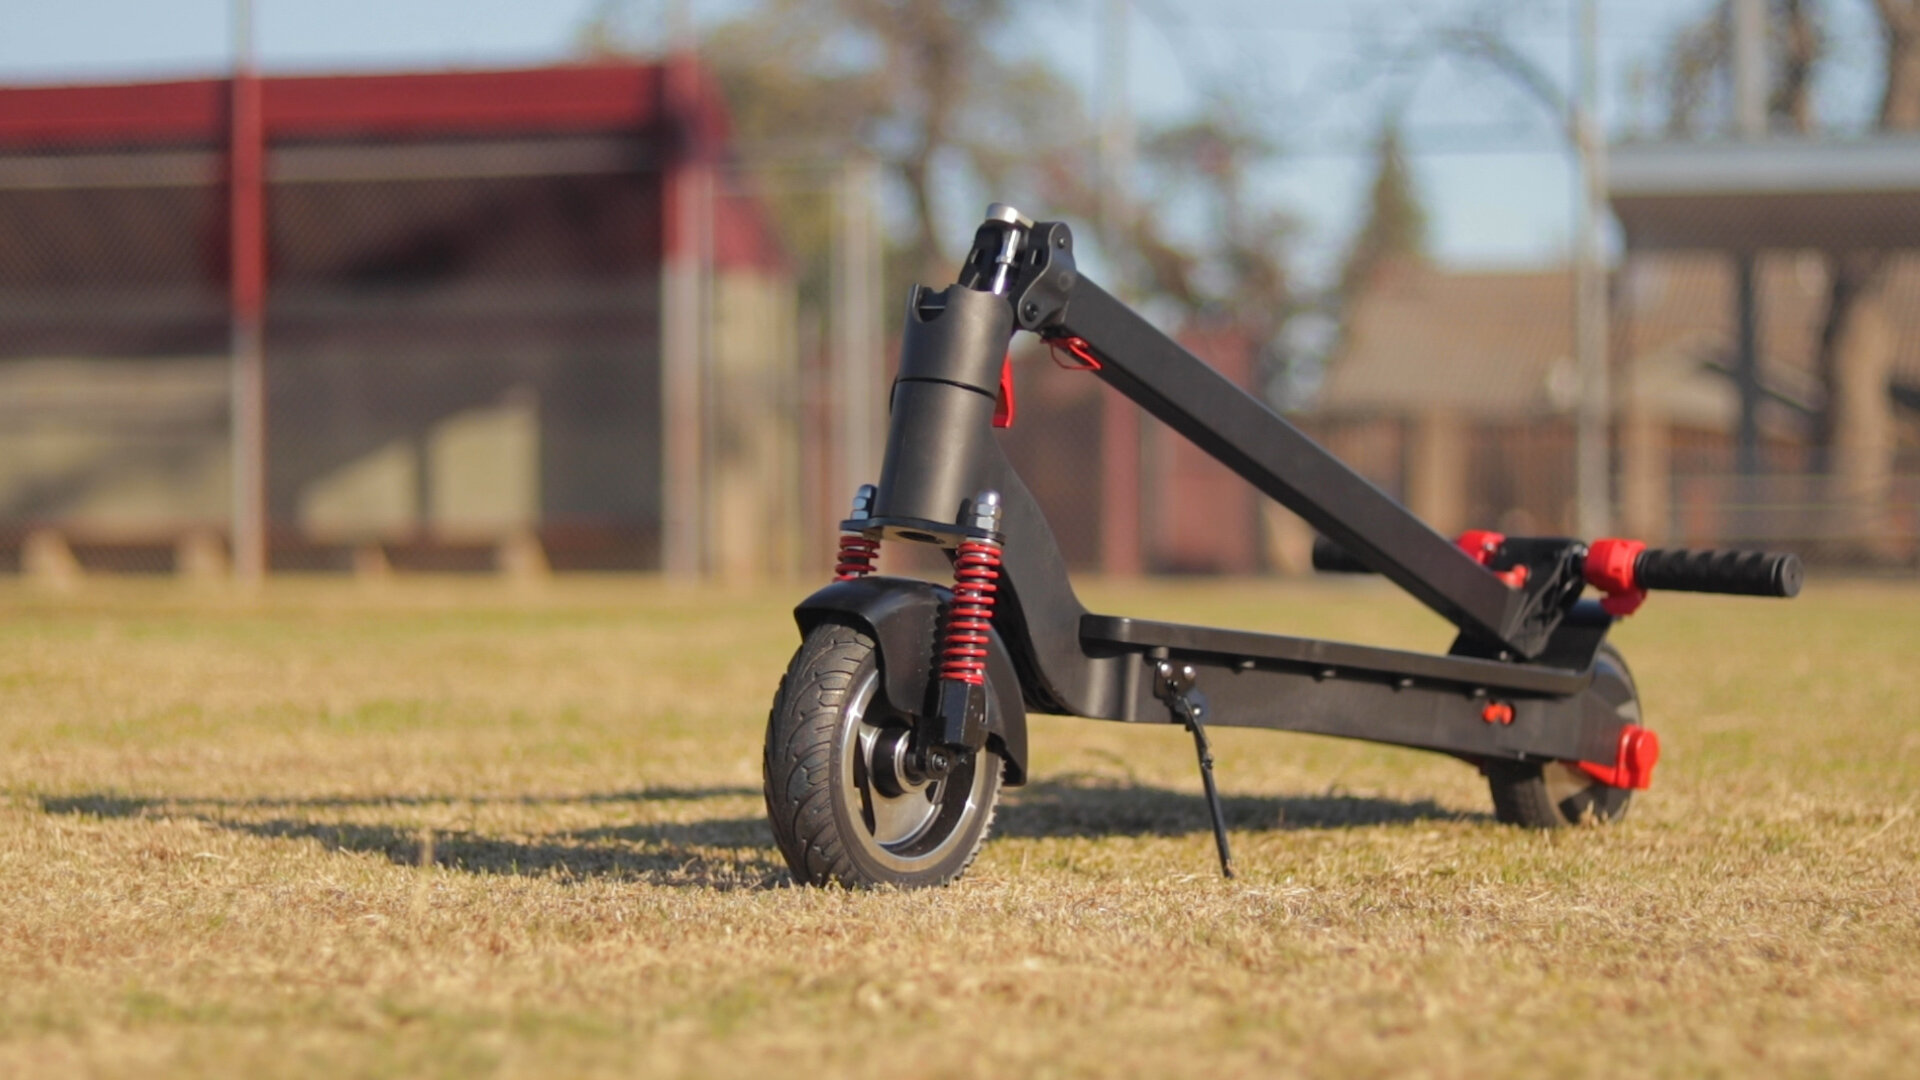 tianrun-r3s-electric-scooter-review-2019-folded-2.jpg